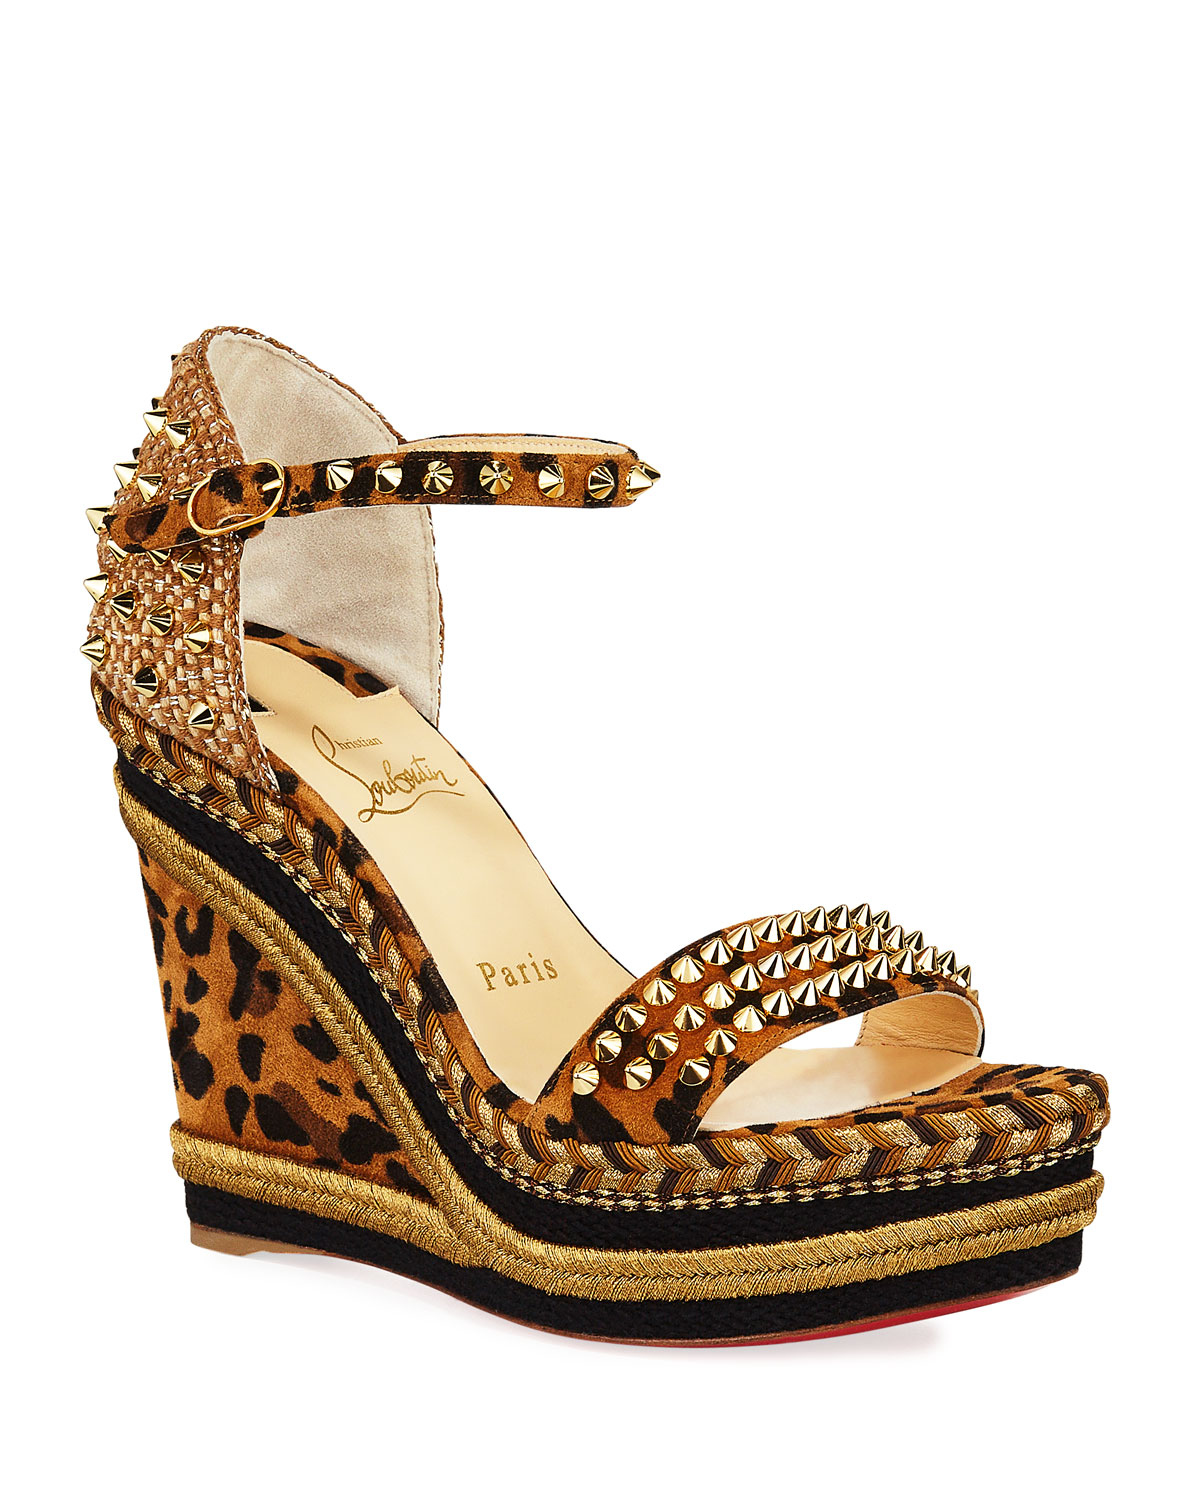 Mad Monica Leopard Red Sole Wedge Espadrilles